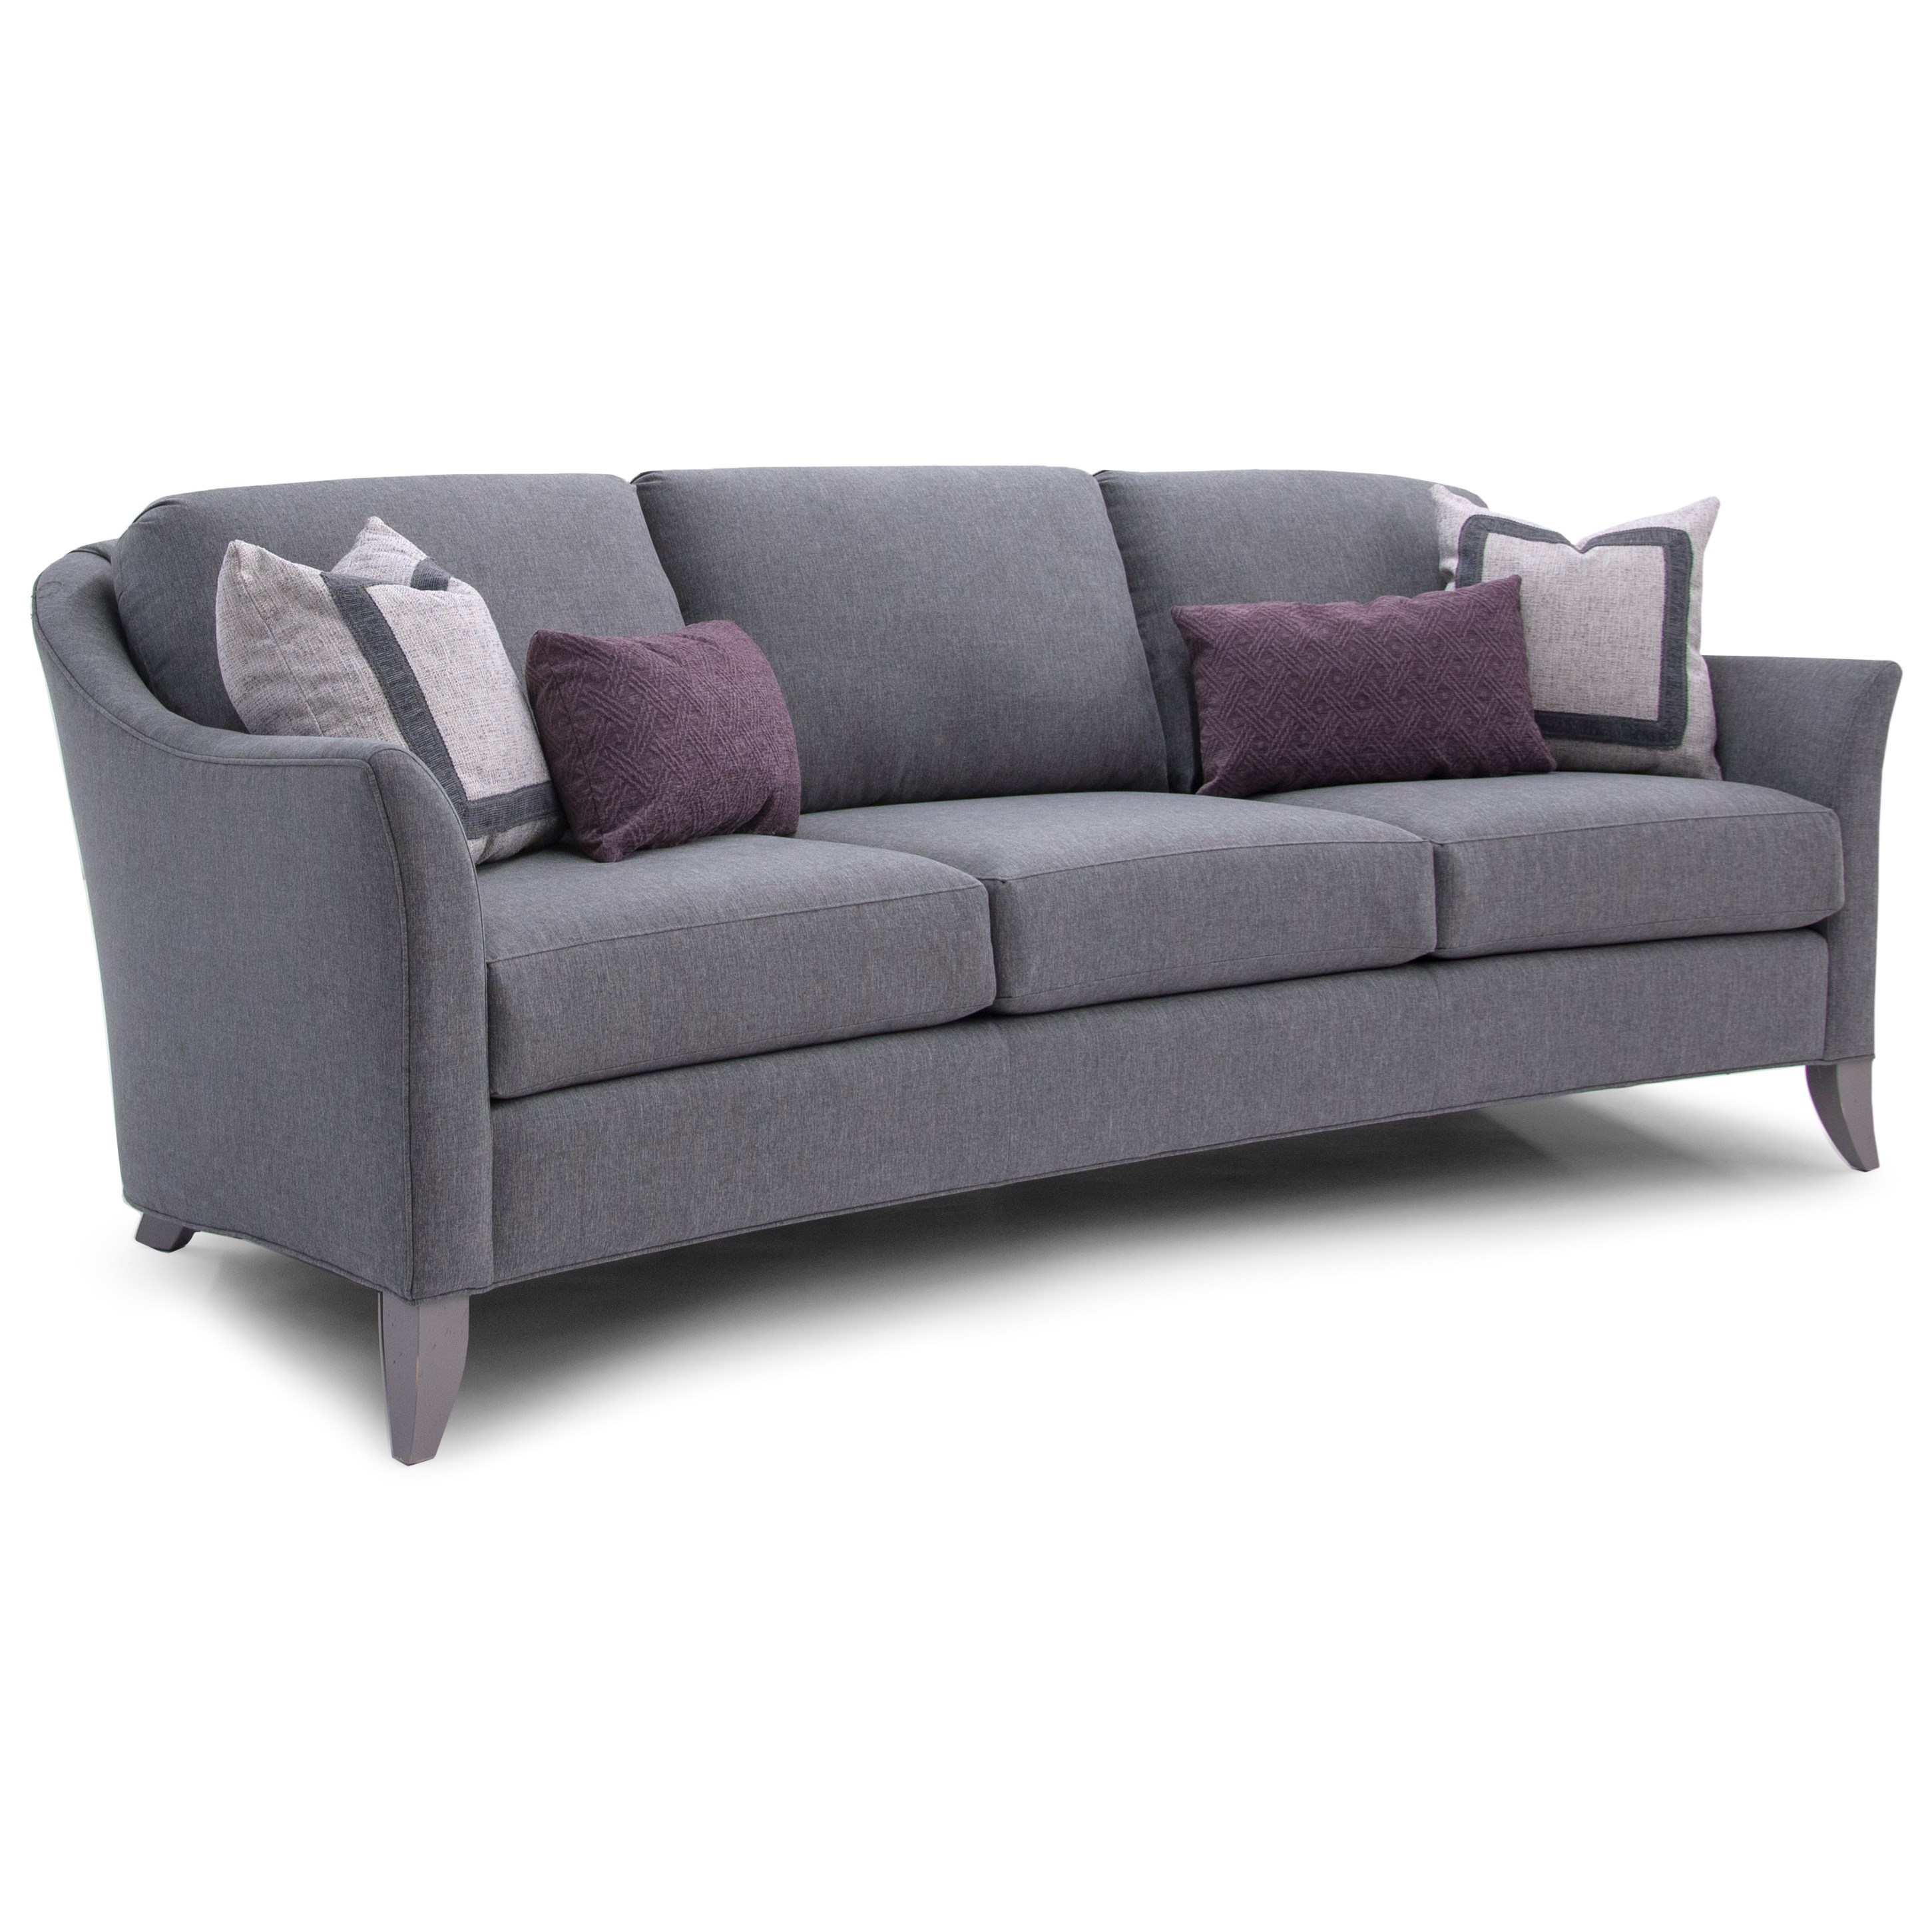 256 Sofa by Smith Brothers at Turk Furniture